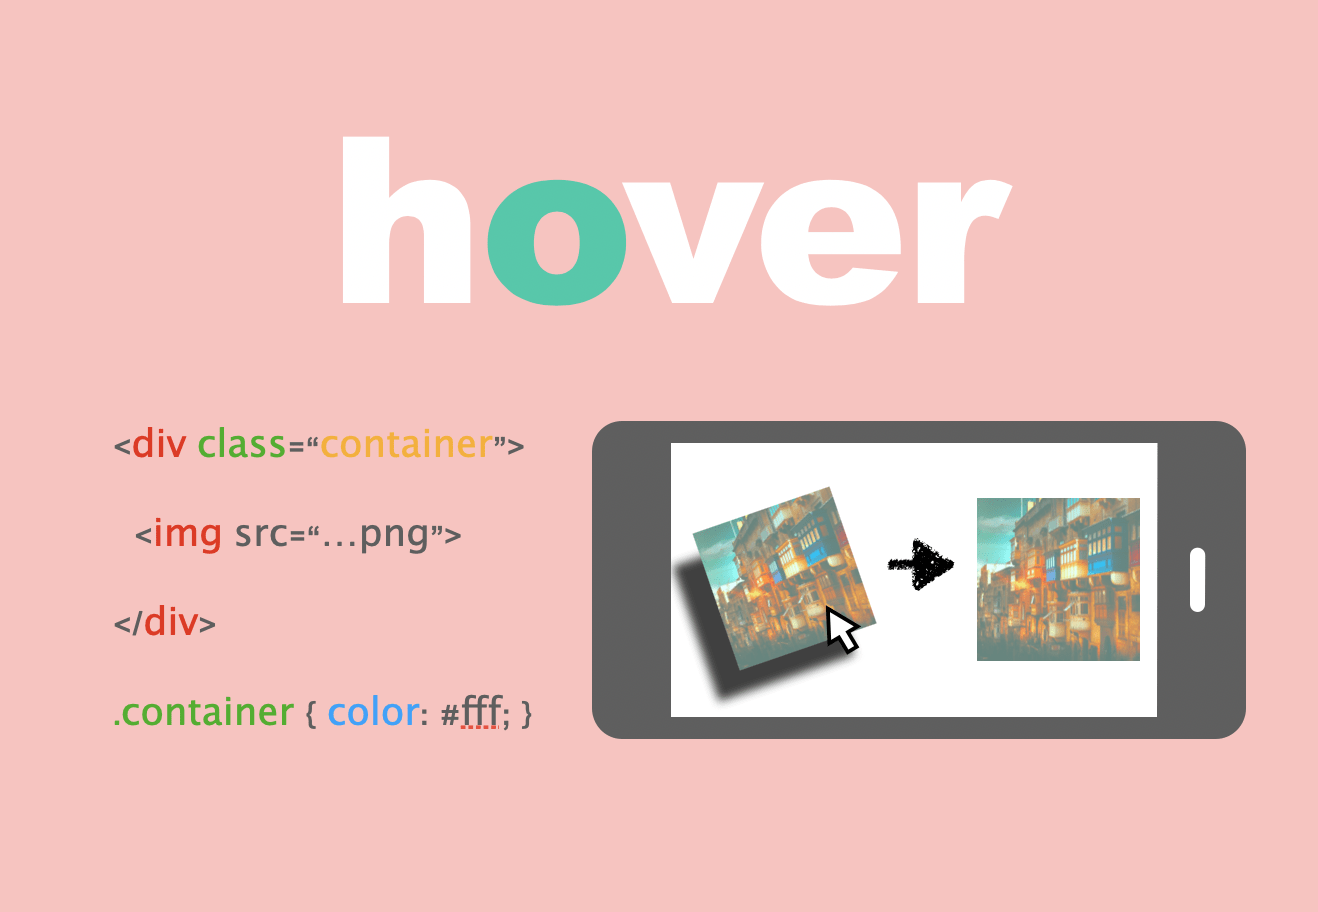 hover-3d-image-animation.png